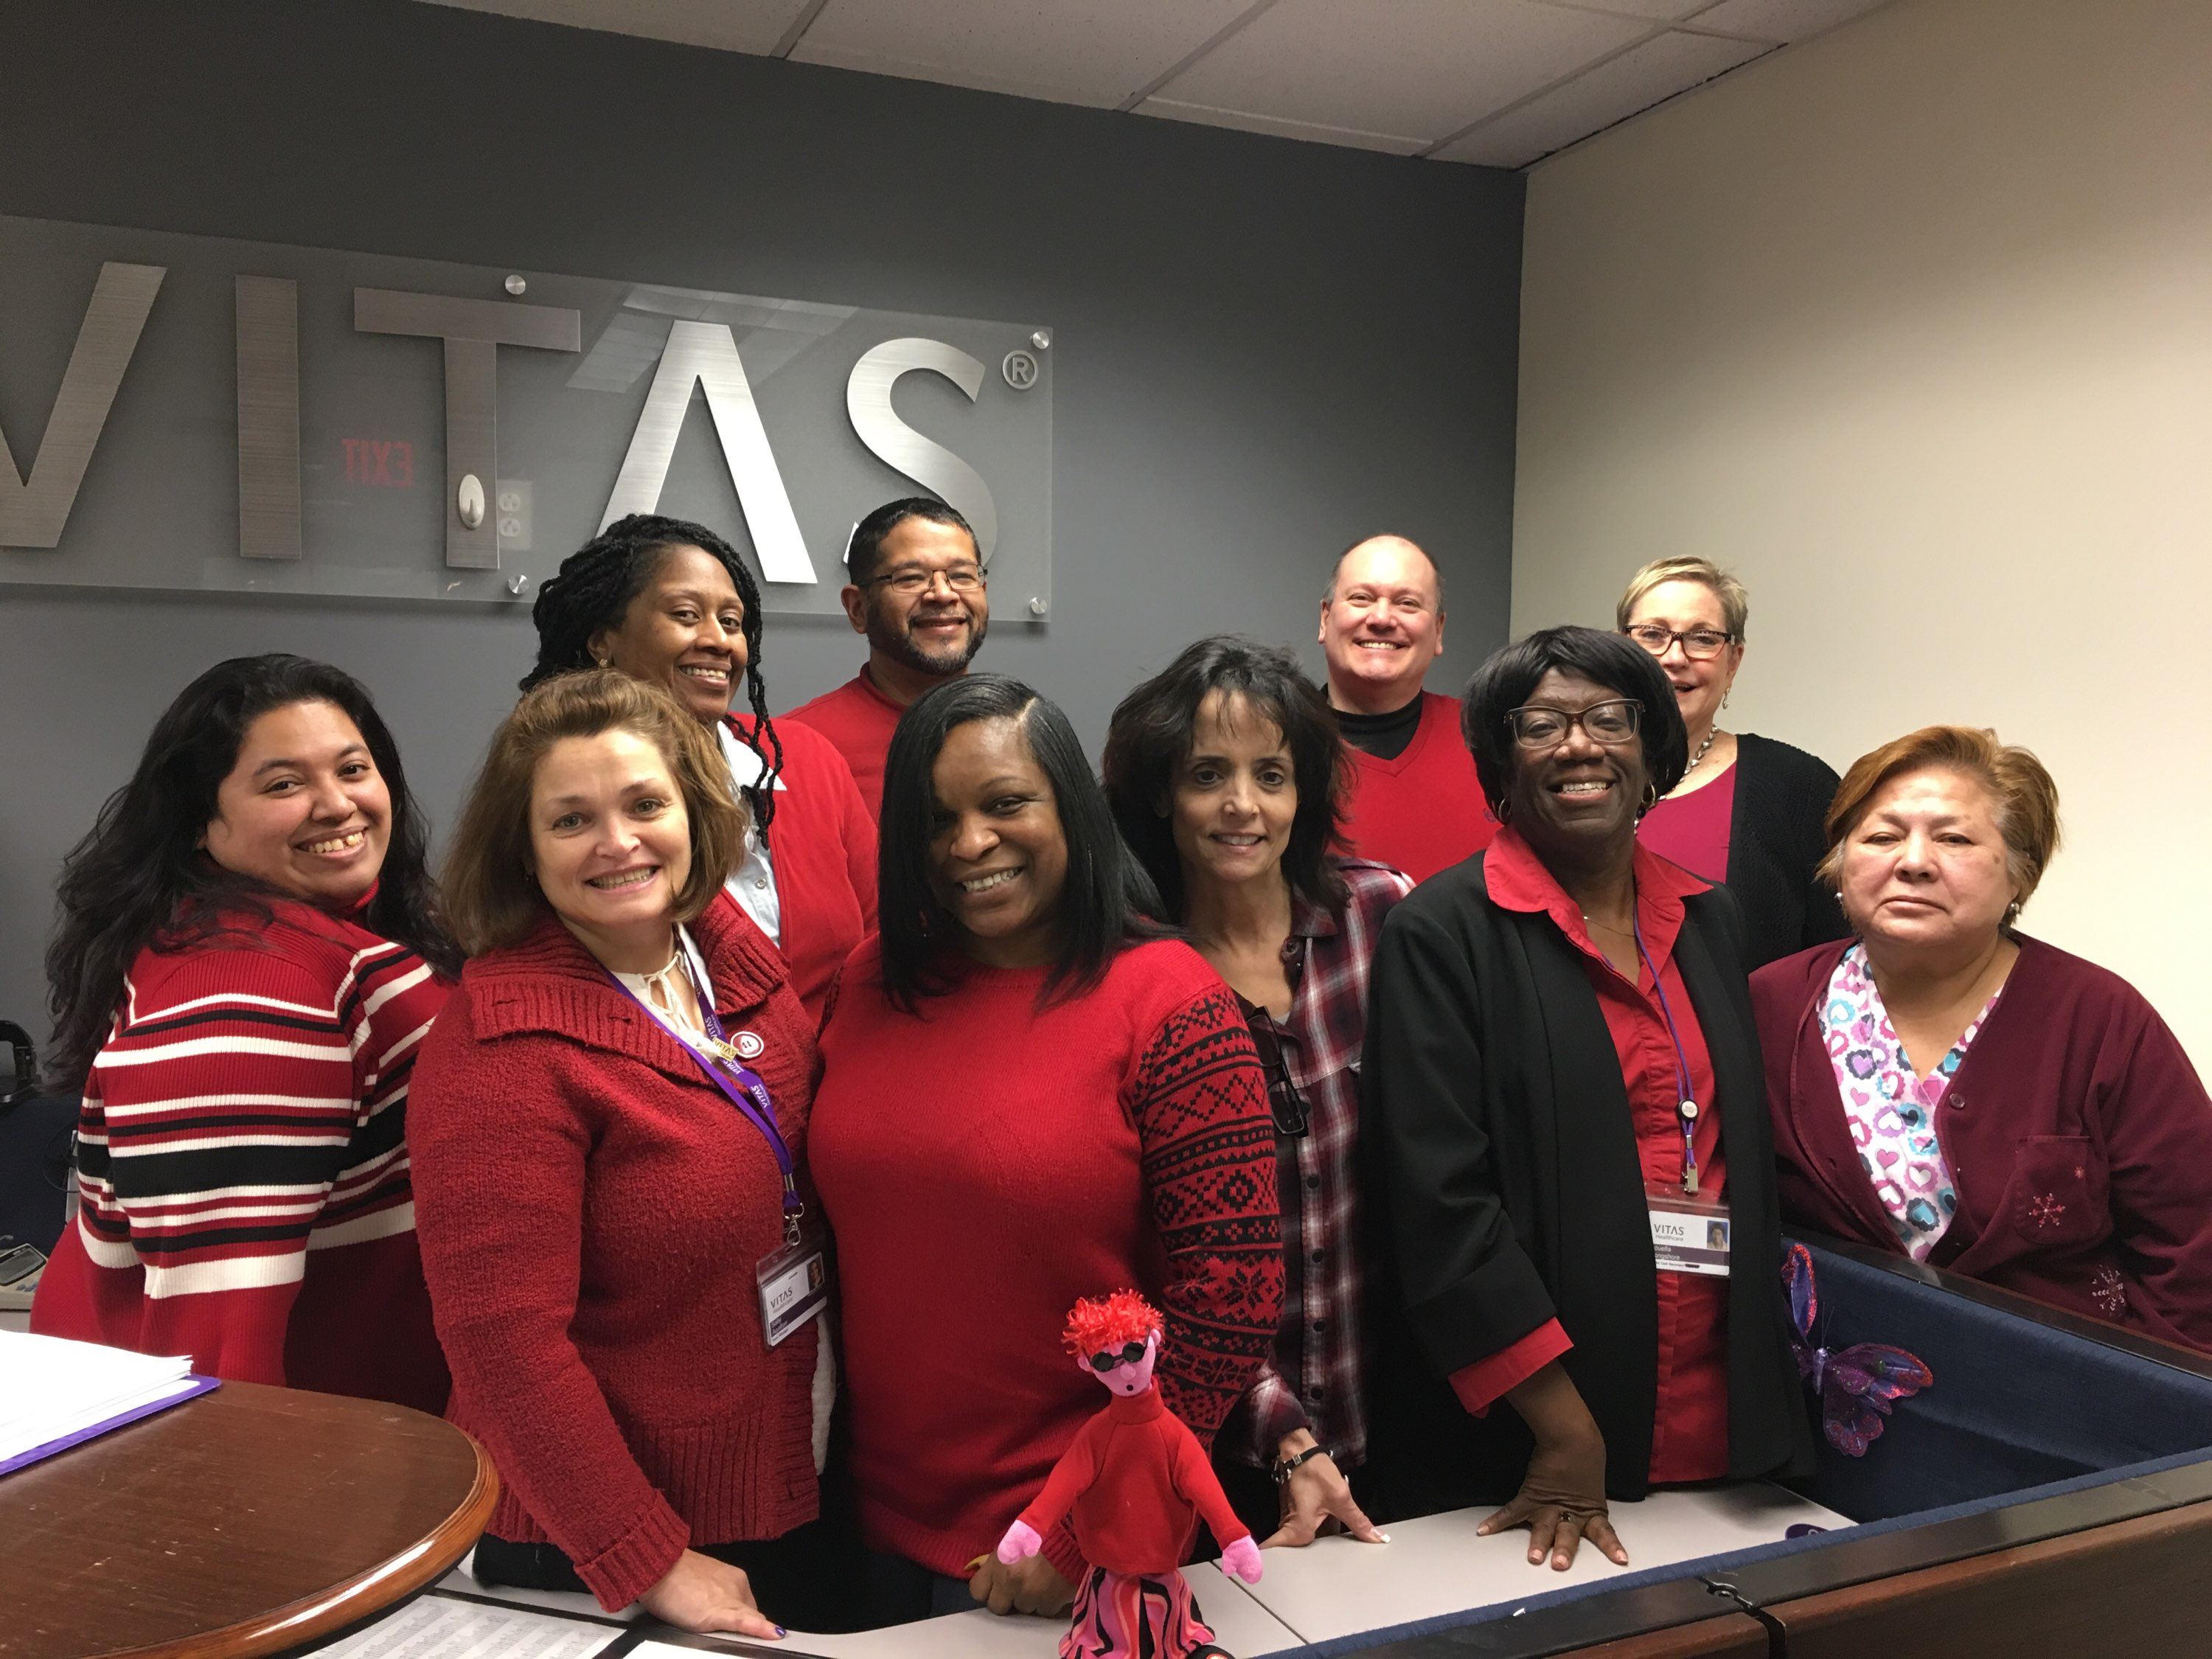 VITAS team members wear red in support of women's heart health